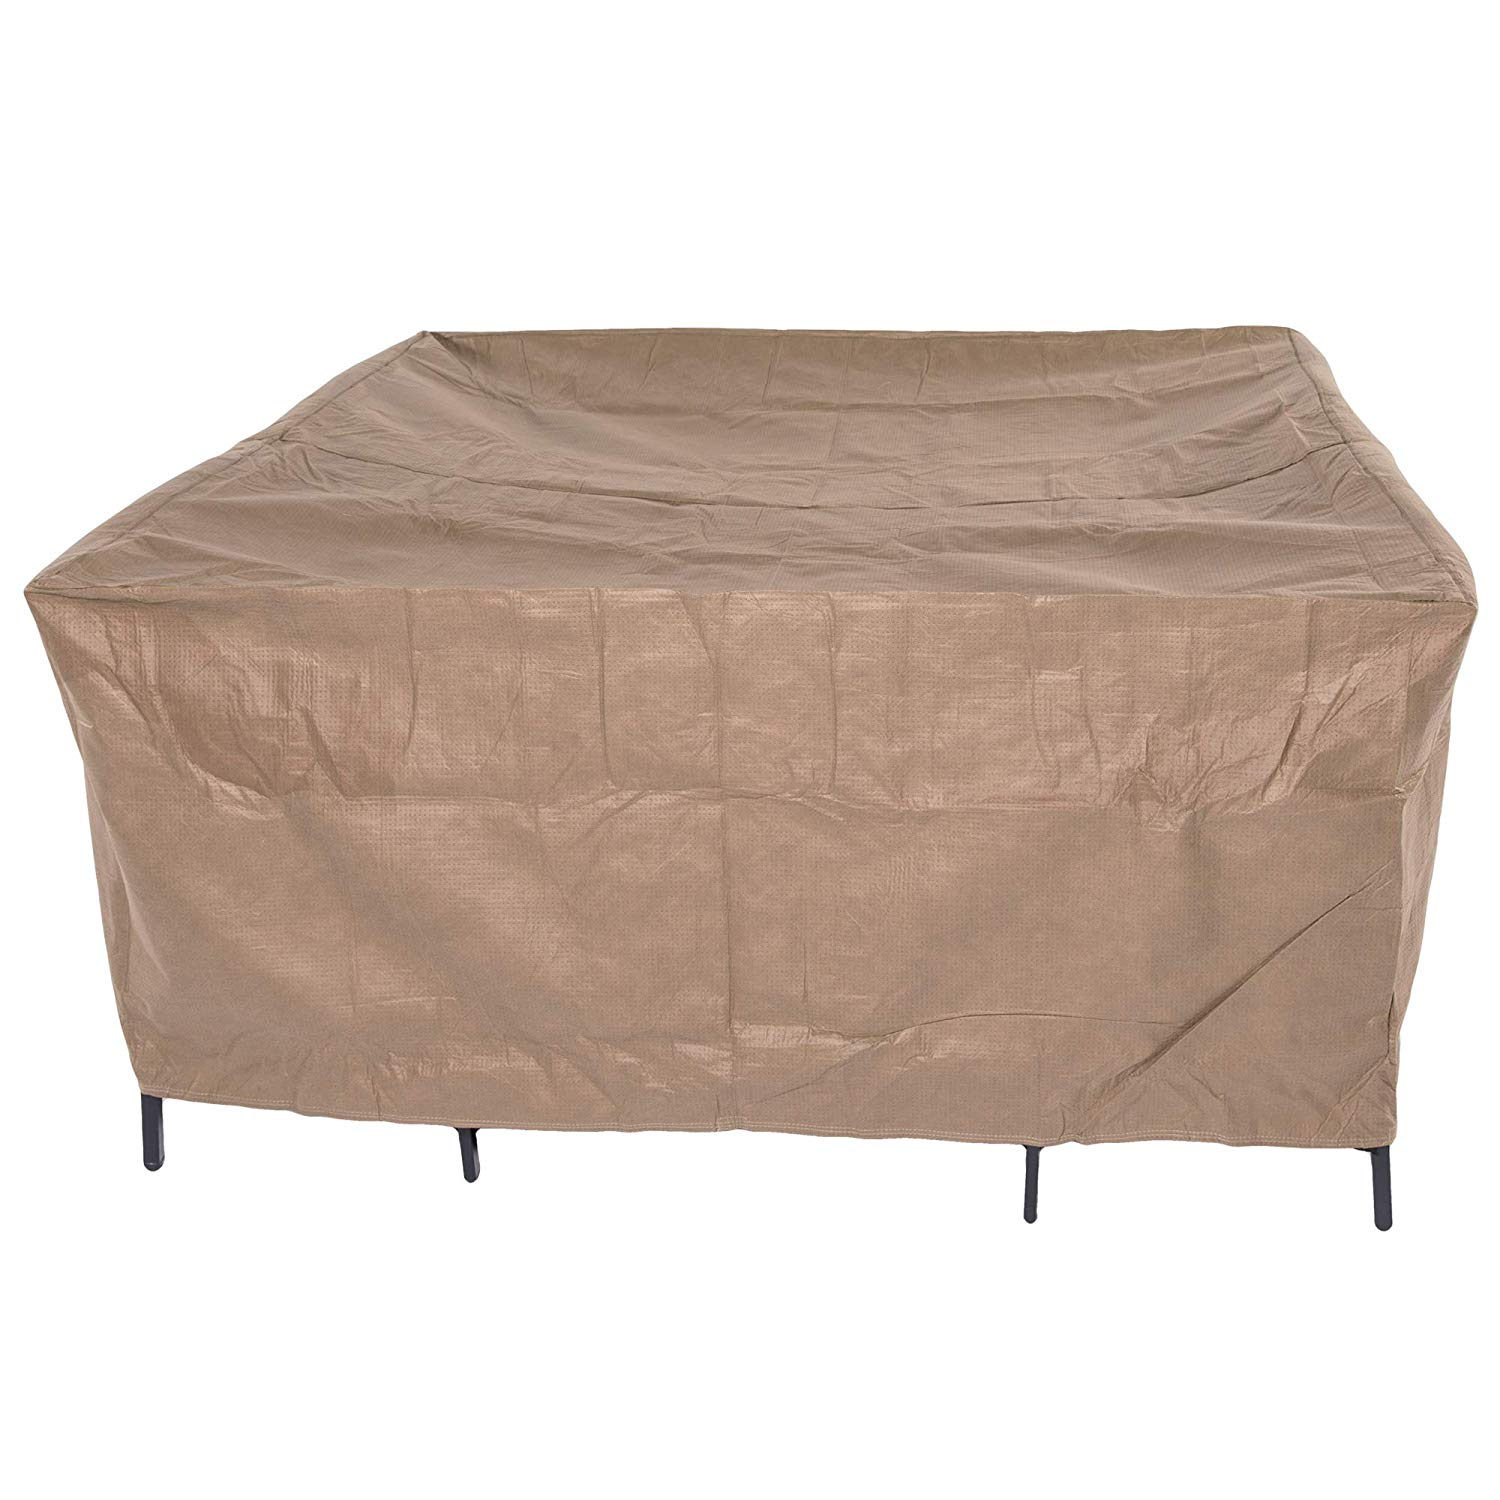 Patio Set Covers Square Find